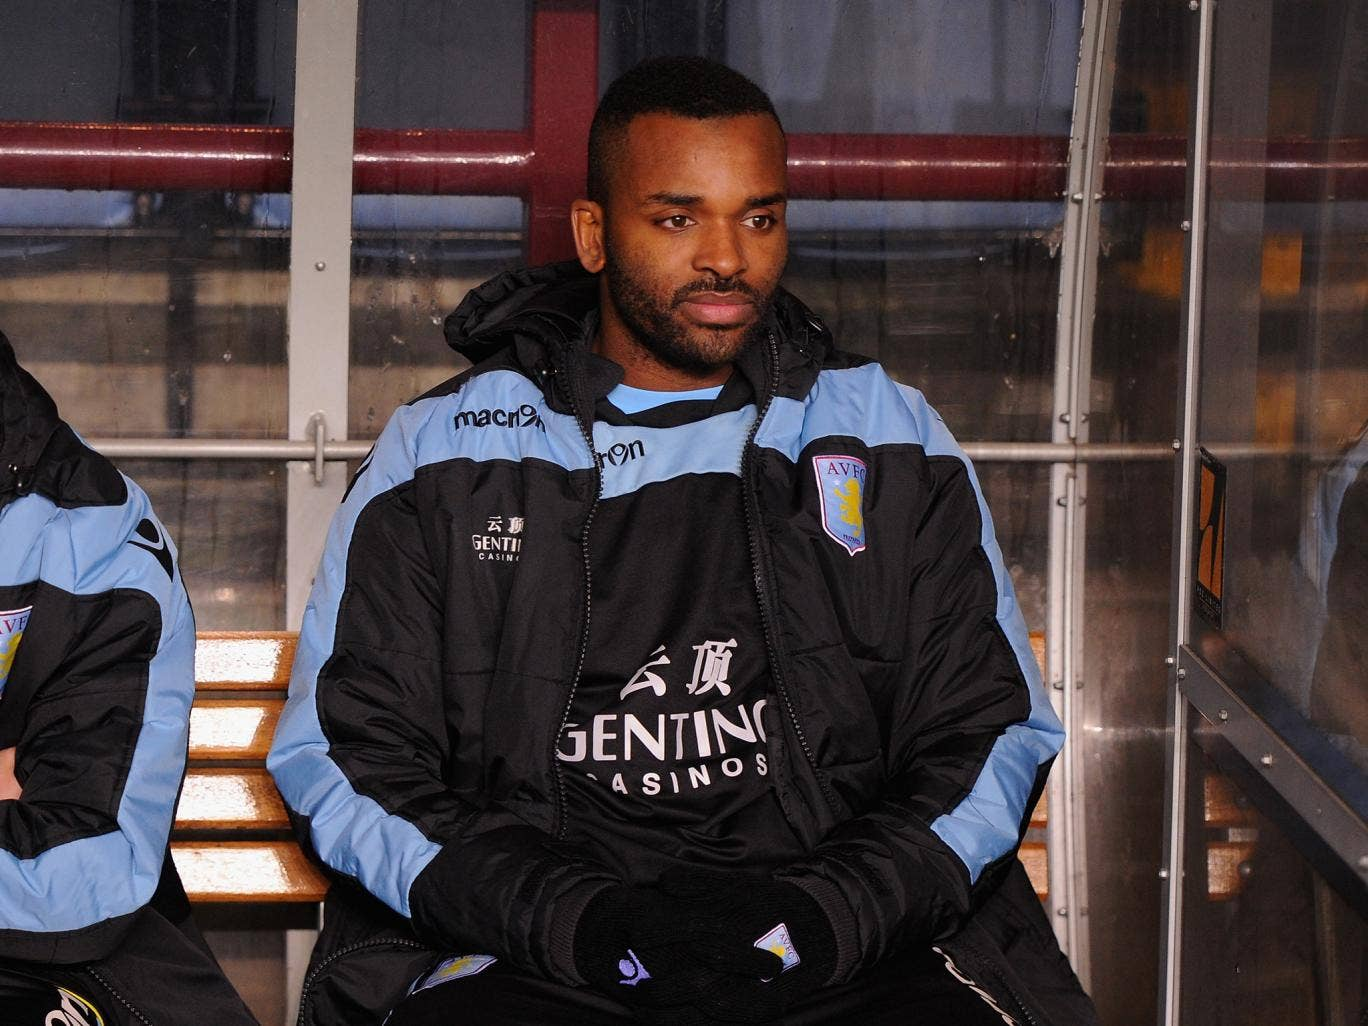 Darren Bent has remained largely on the Aston Villa bench over the last season